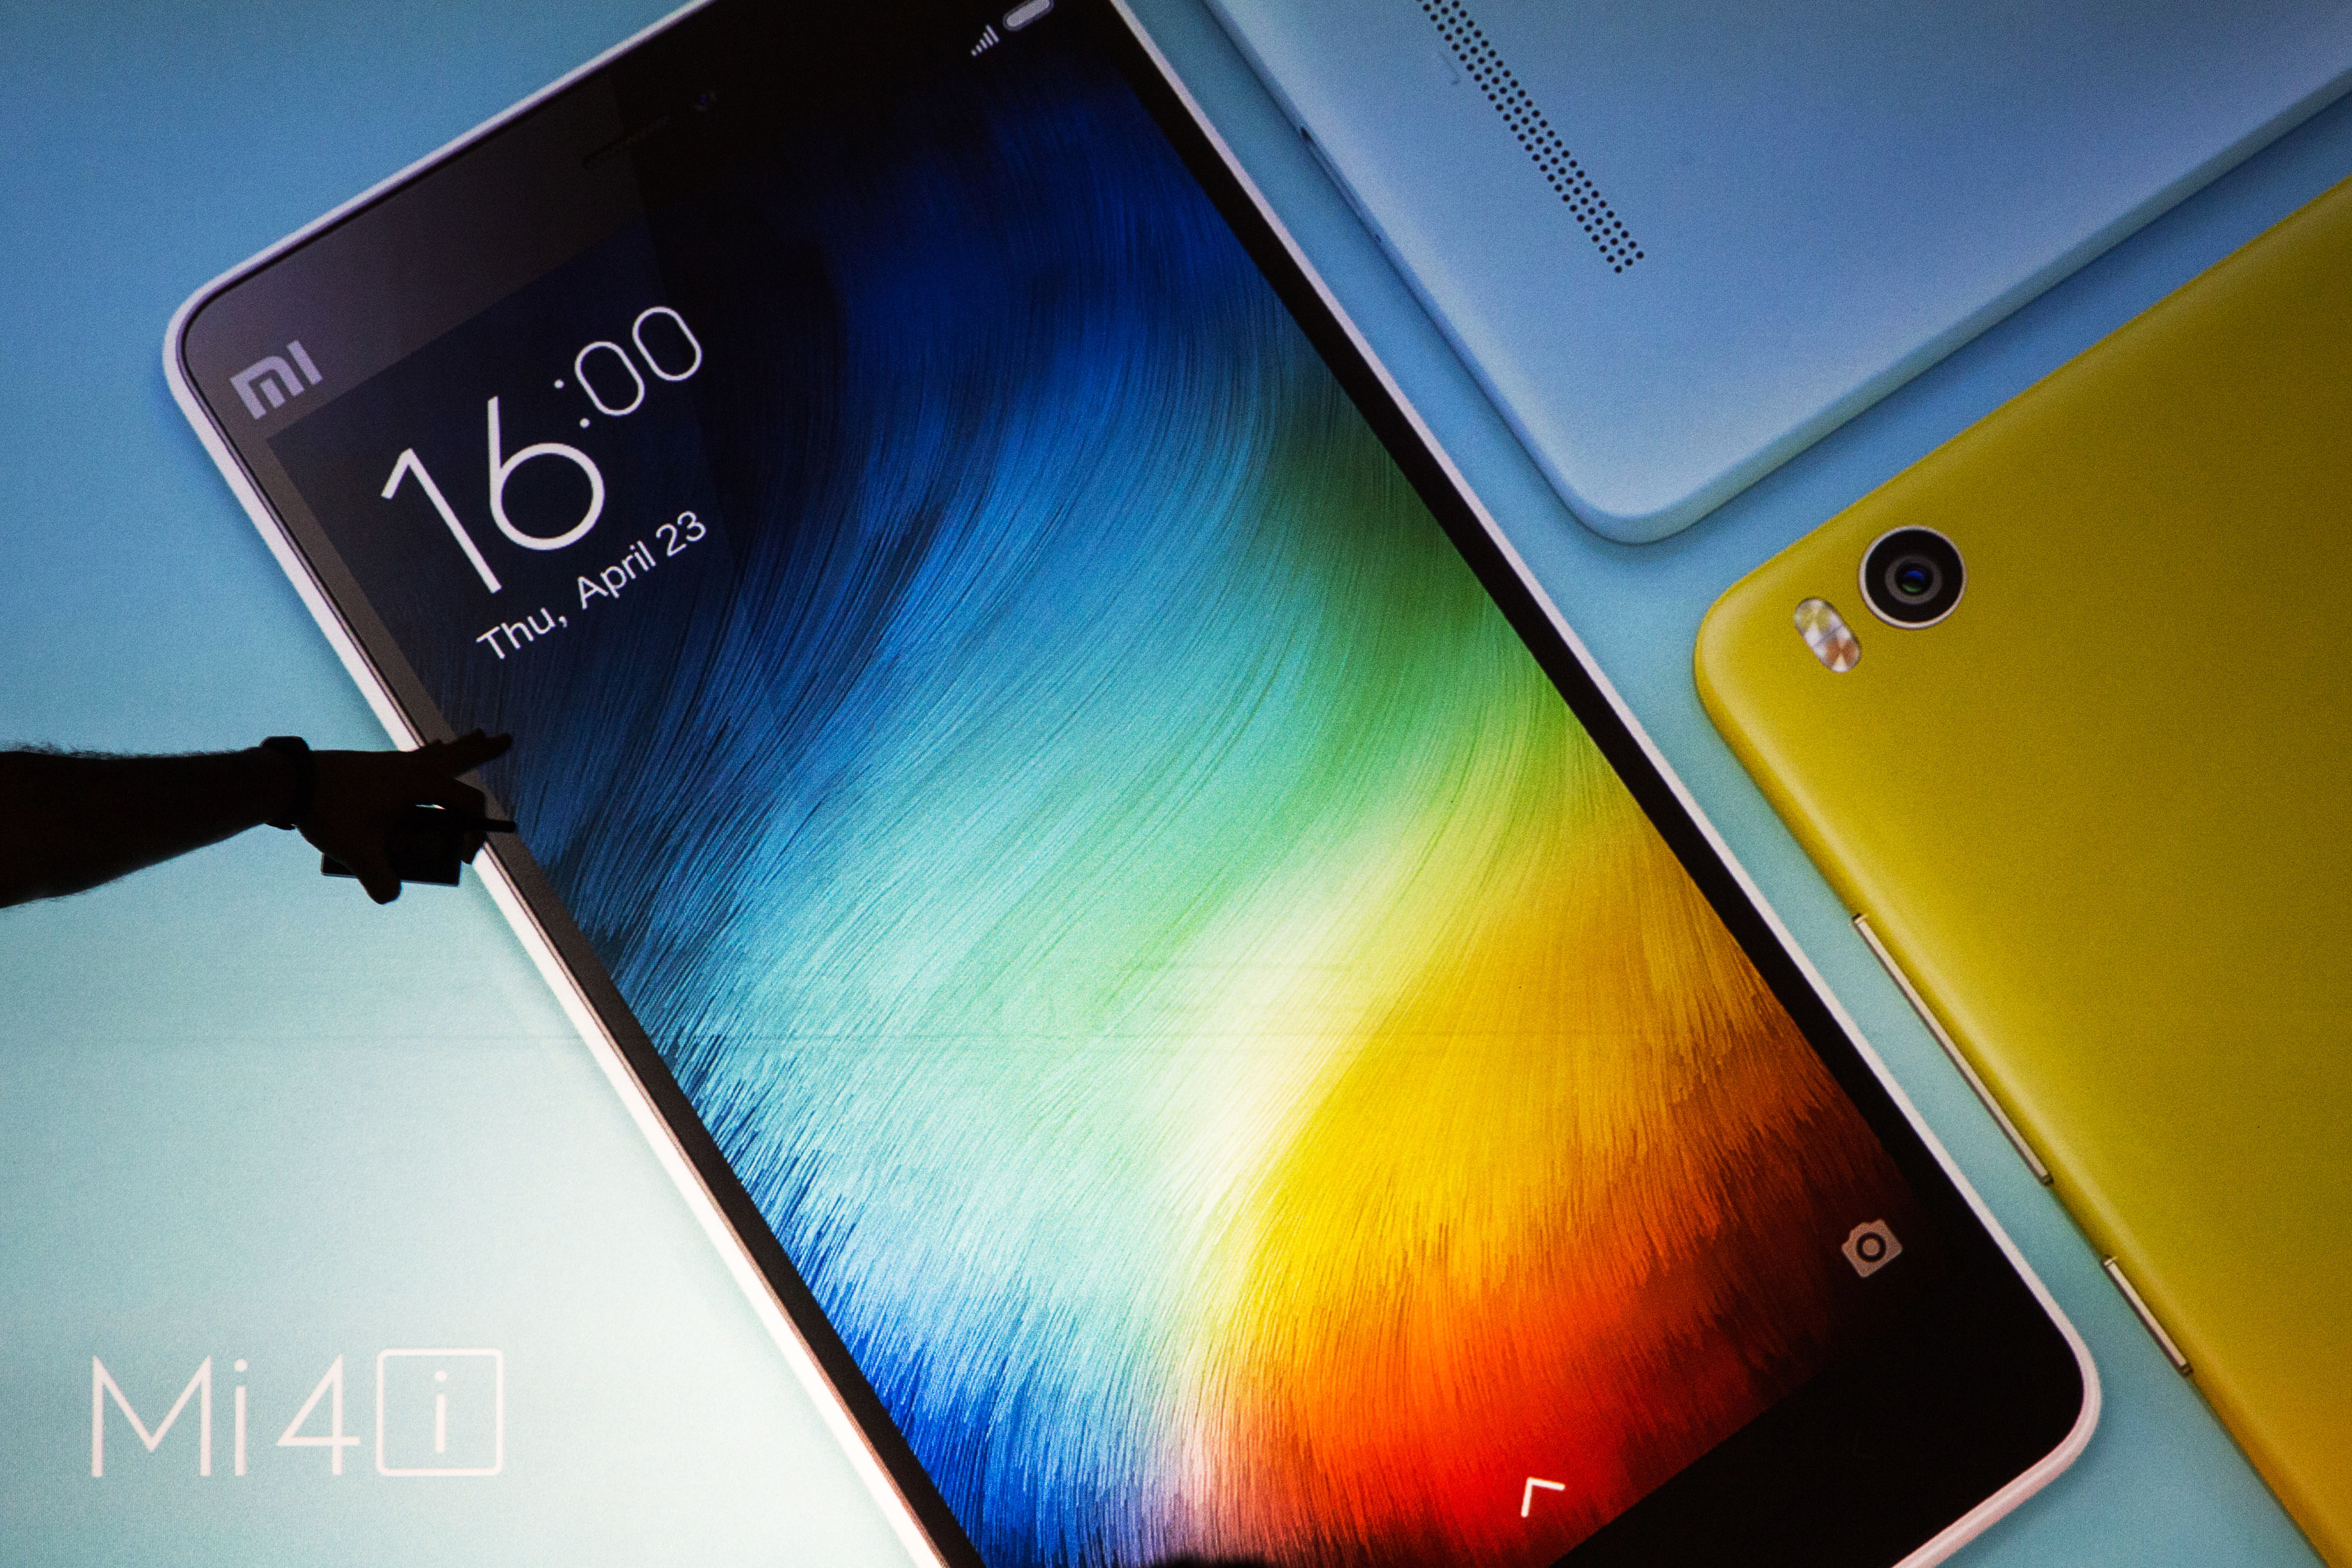 Xiaomi Corp. Vice President of Global Operations Hugo Barra Launches The Mi 4i Smartphone